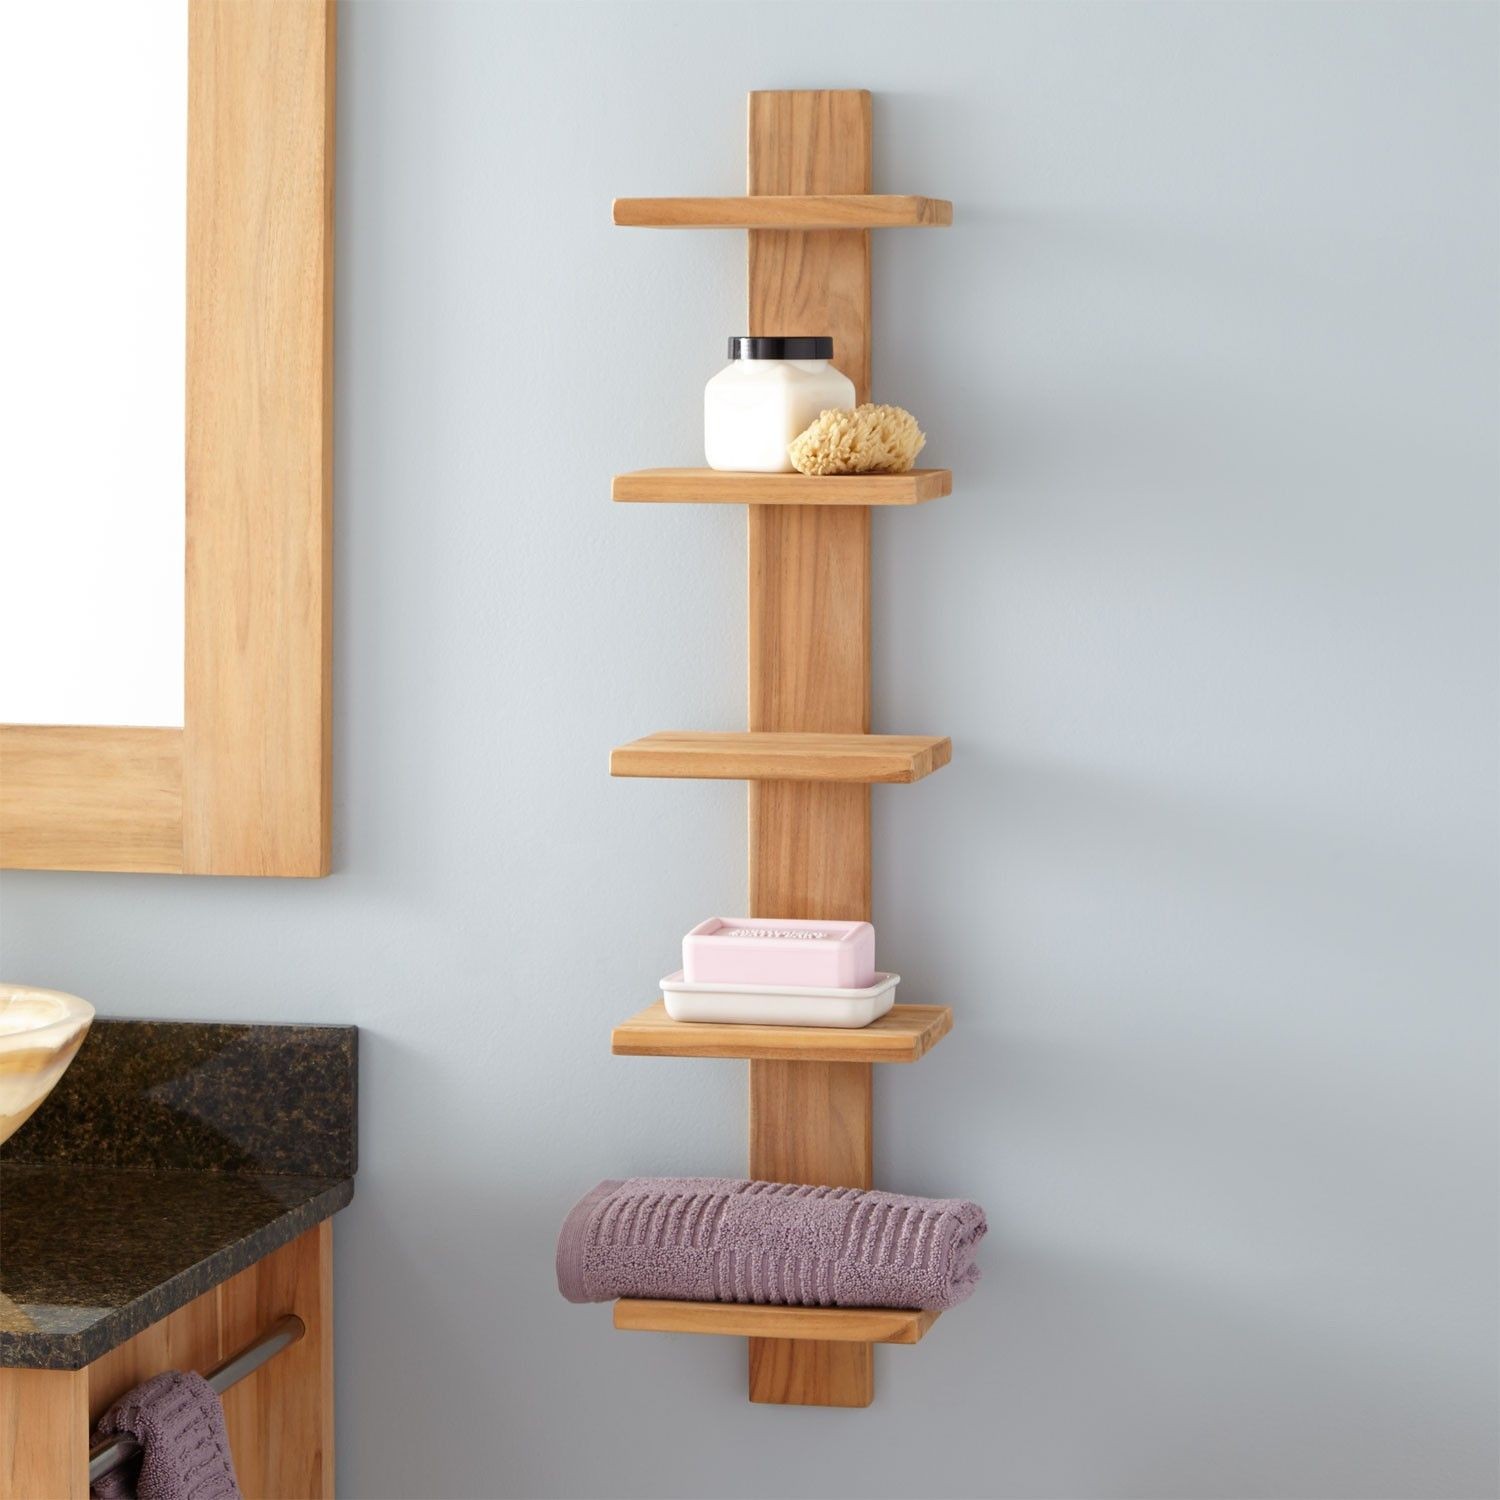 Hanging Bathroom Shelves Impressive Bastian Hanging Bathroom Teak Shelf  Five Shelves  Teak Shelves Review